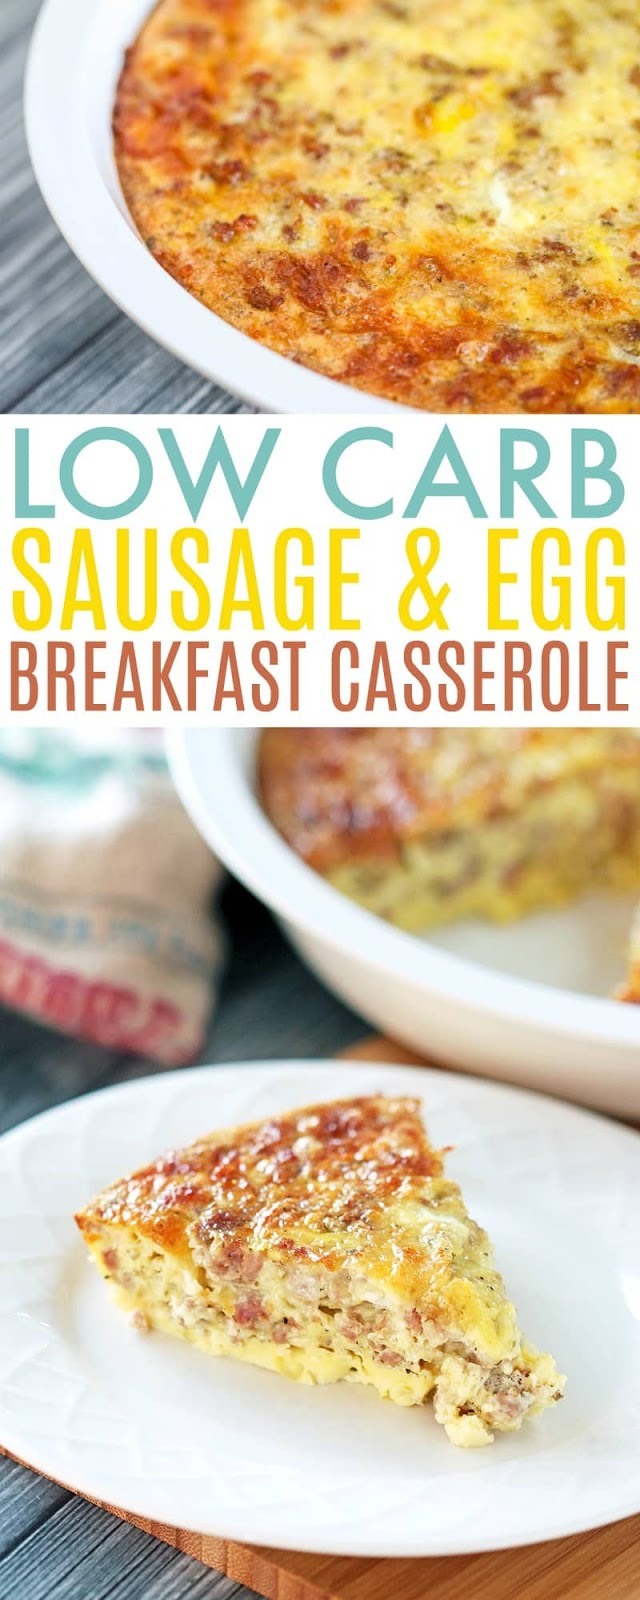 Sausage and Egg Low Carb Breakfast Casserole Recipe